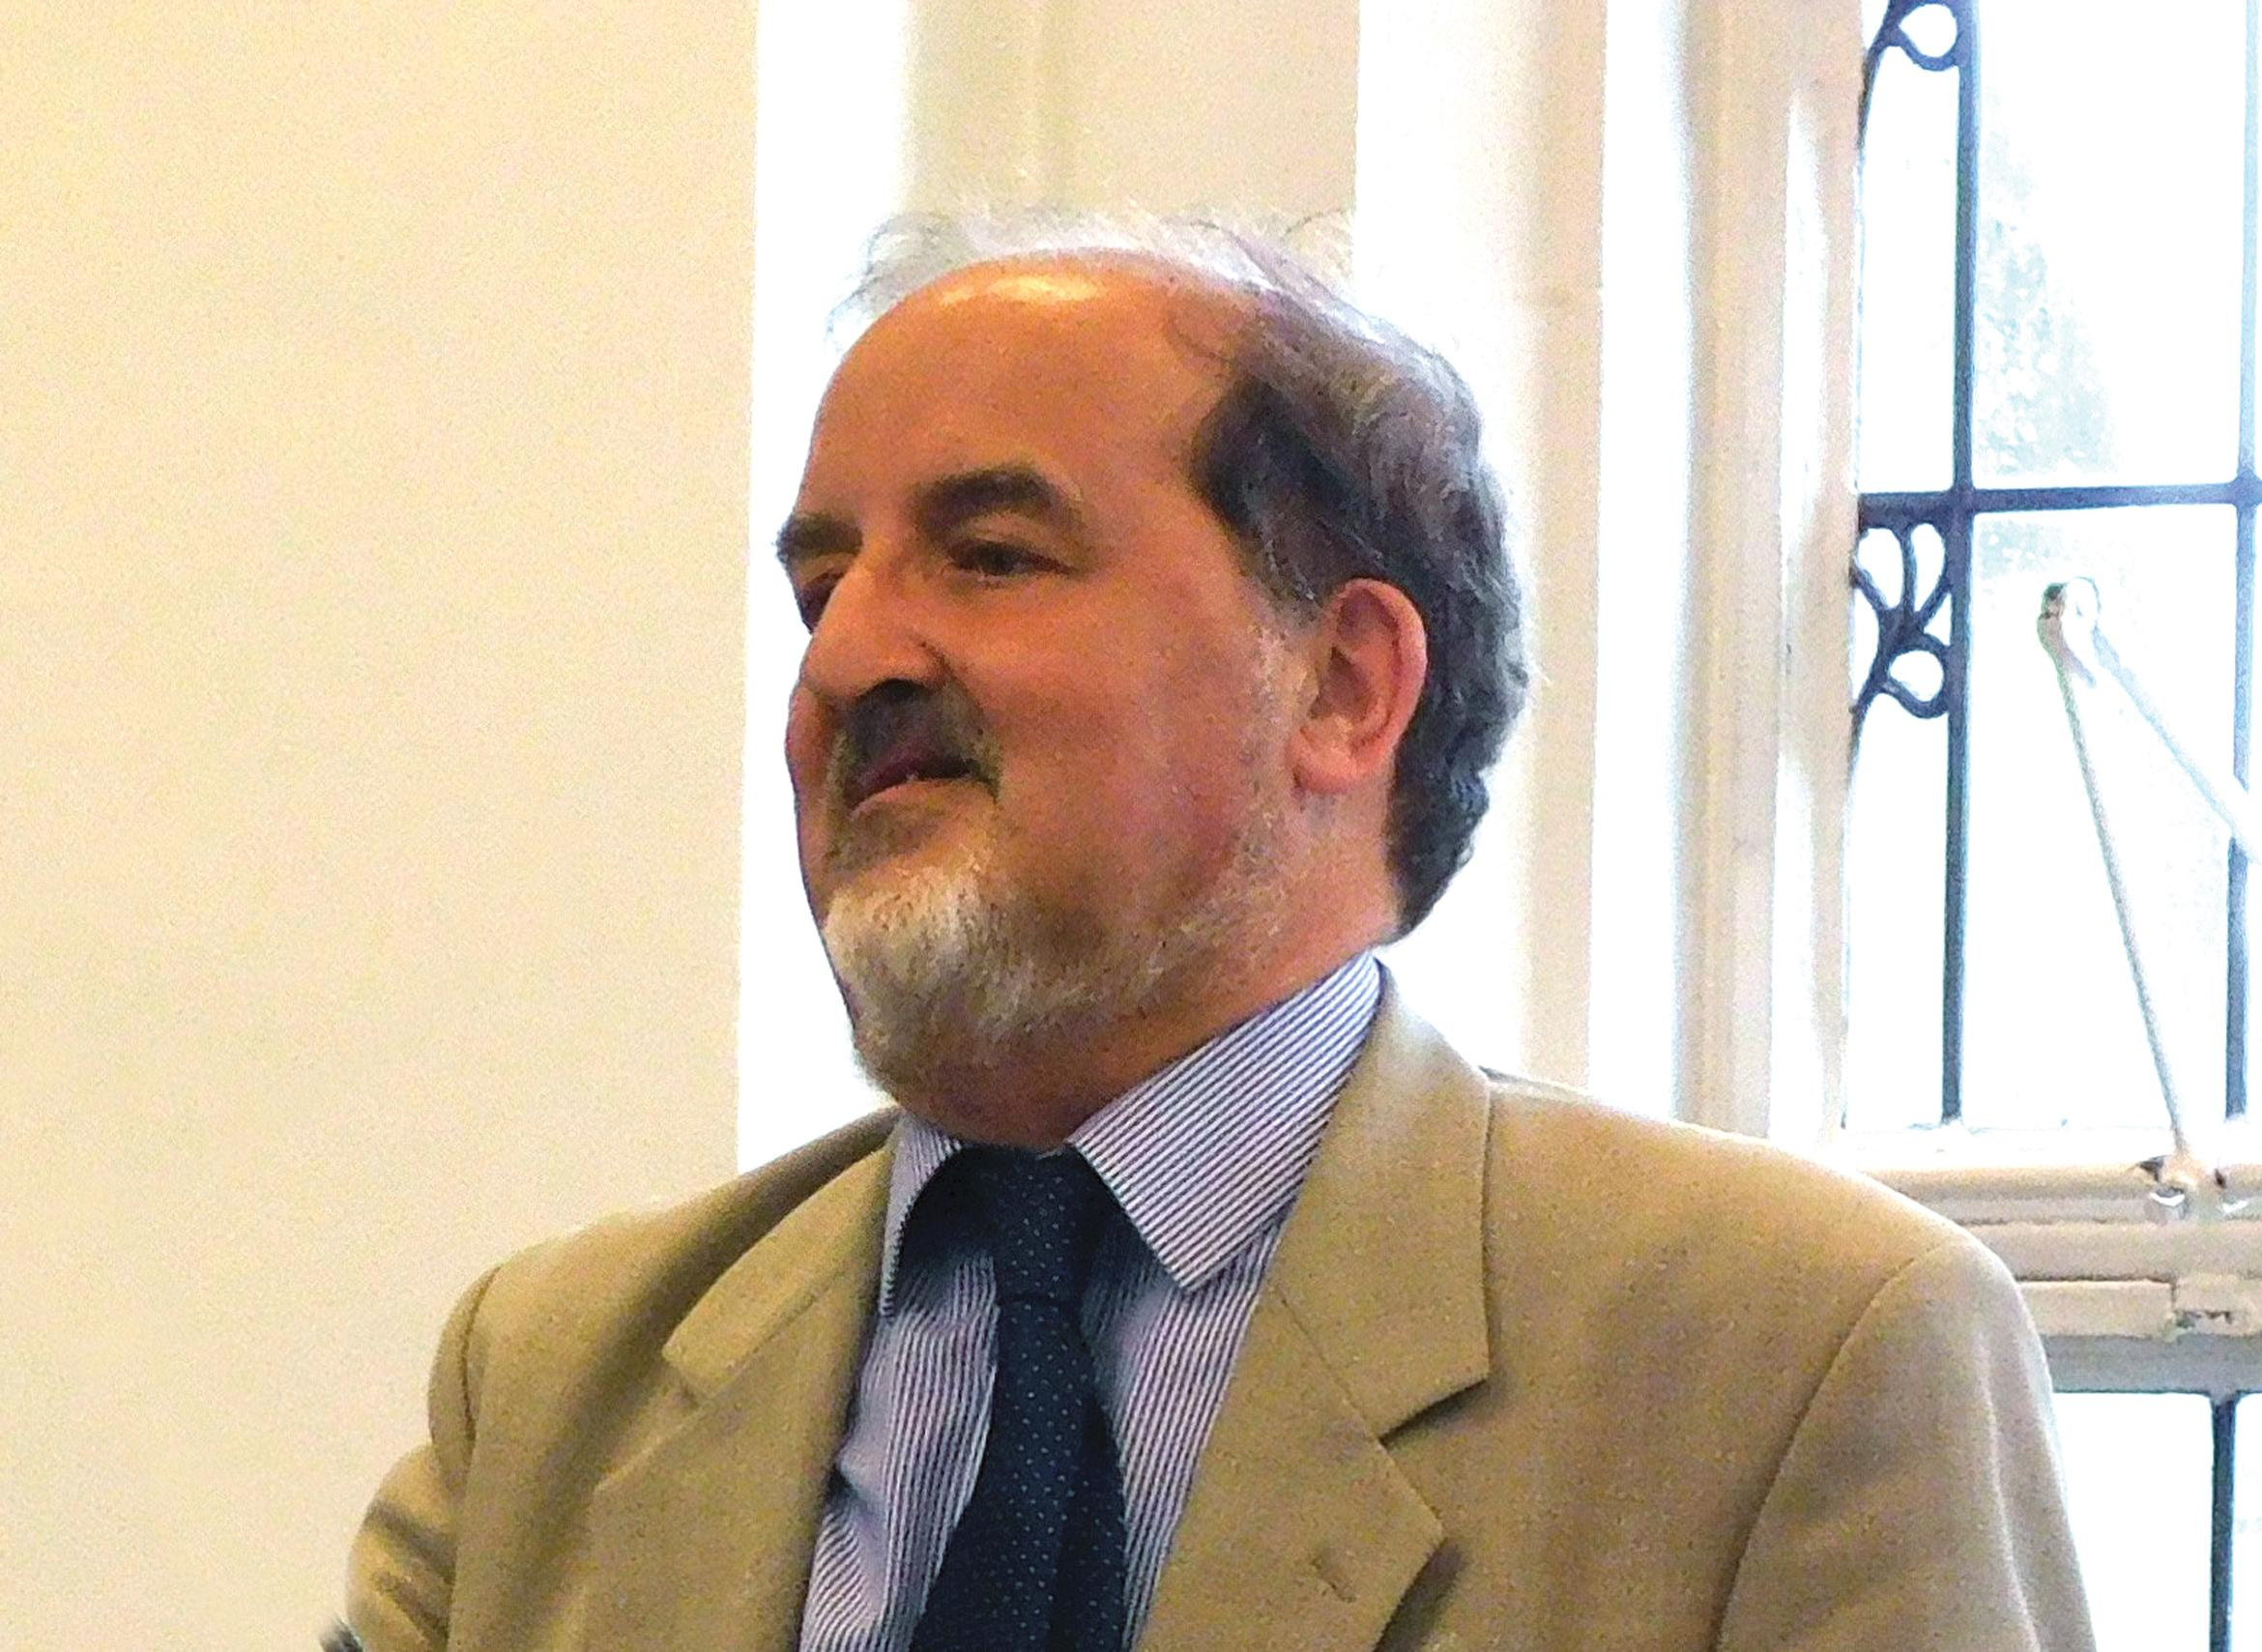 Peter White is an emeritus professor at the University of Westminster.